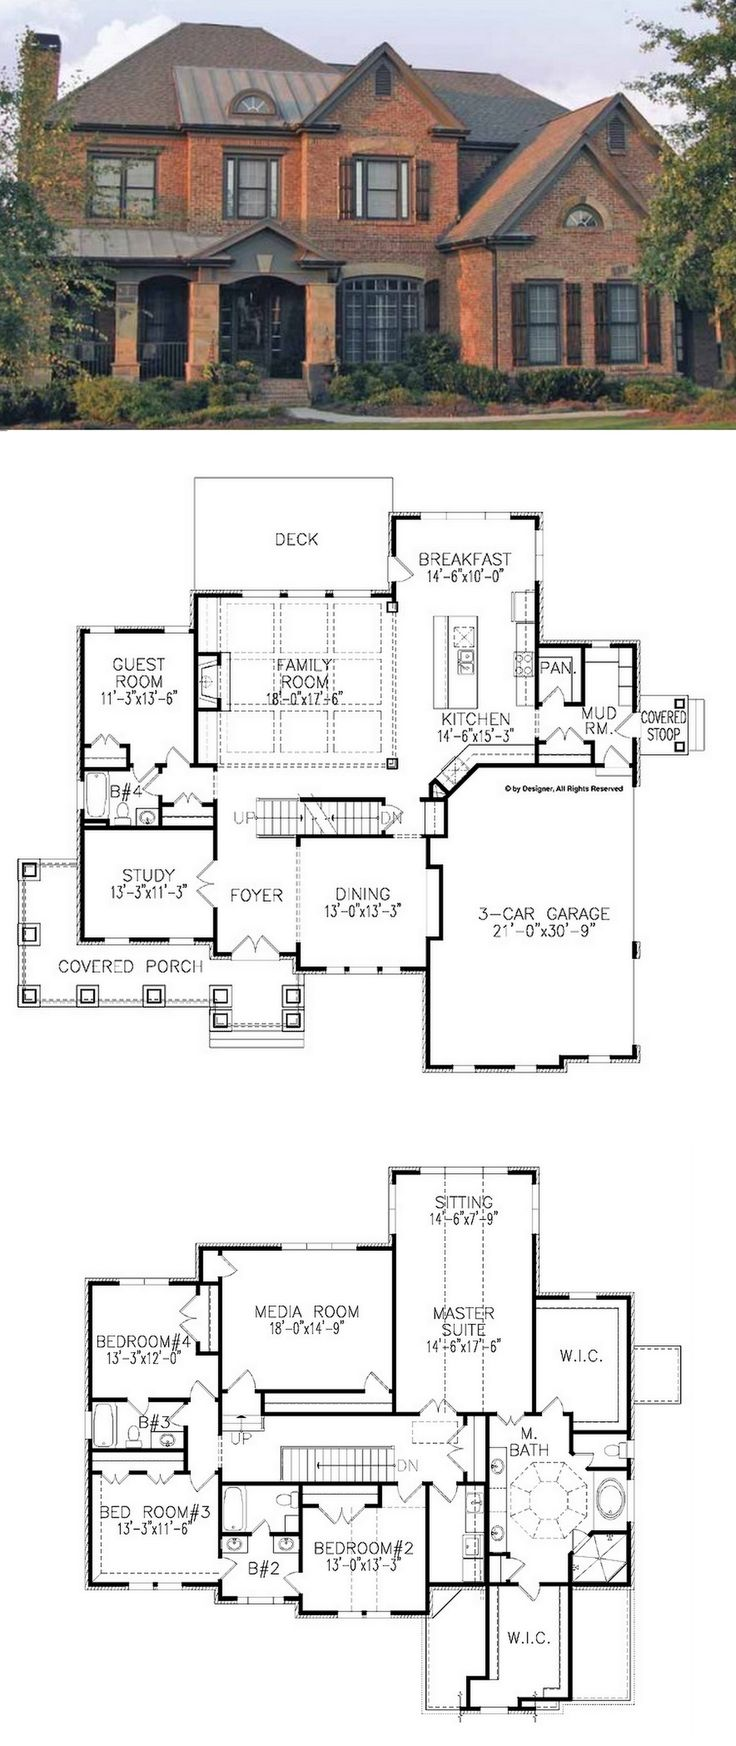 Best 25 5 bedroom house plans ideas only on pinterest 4 for 5 bedroom floor plans